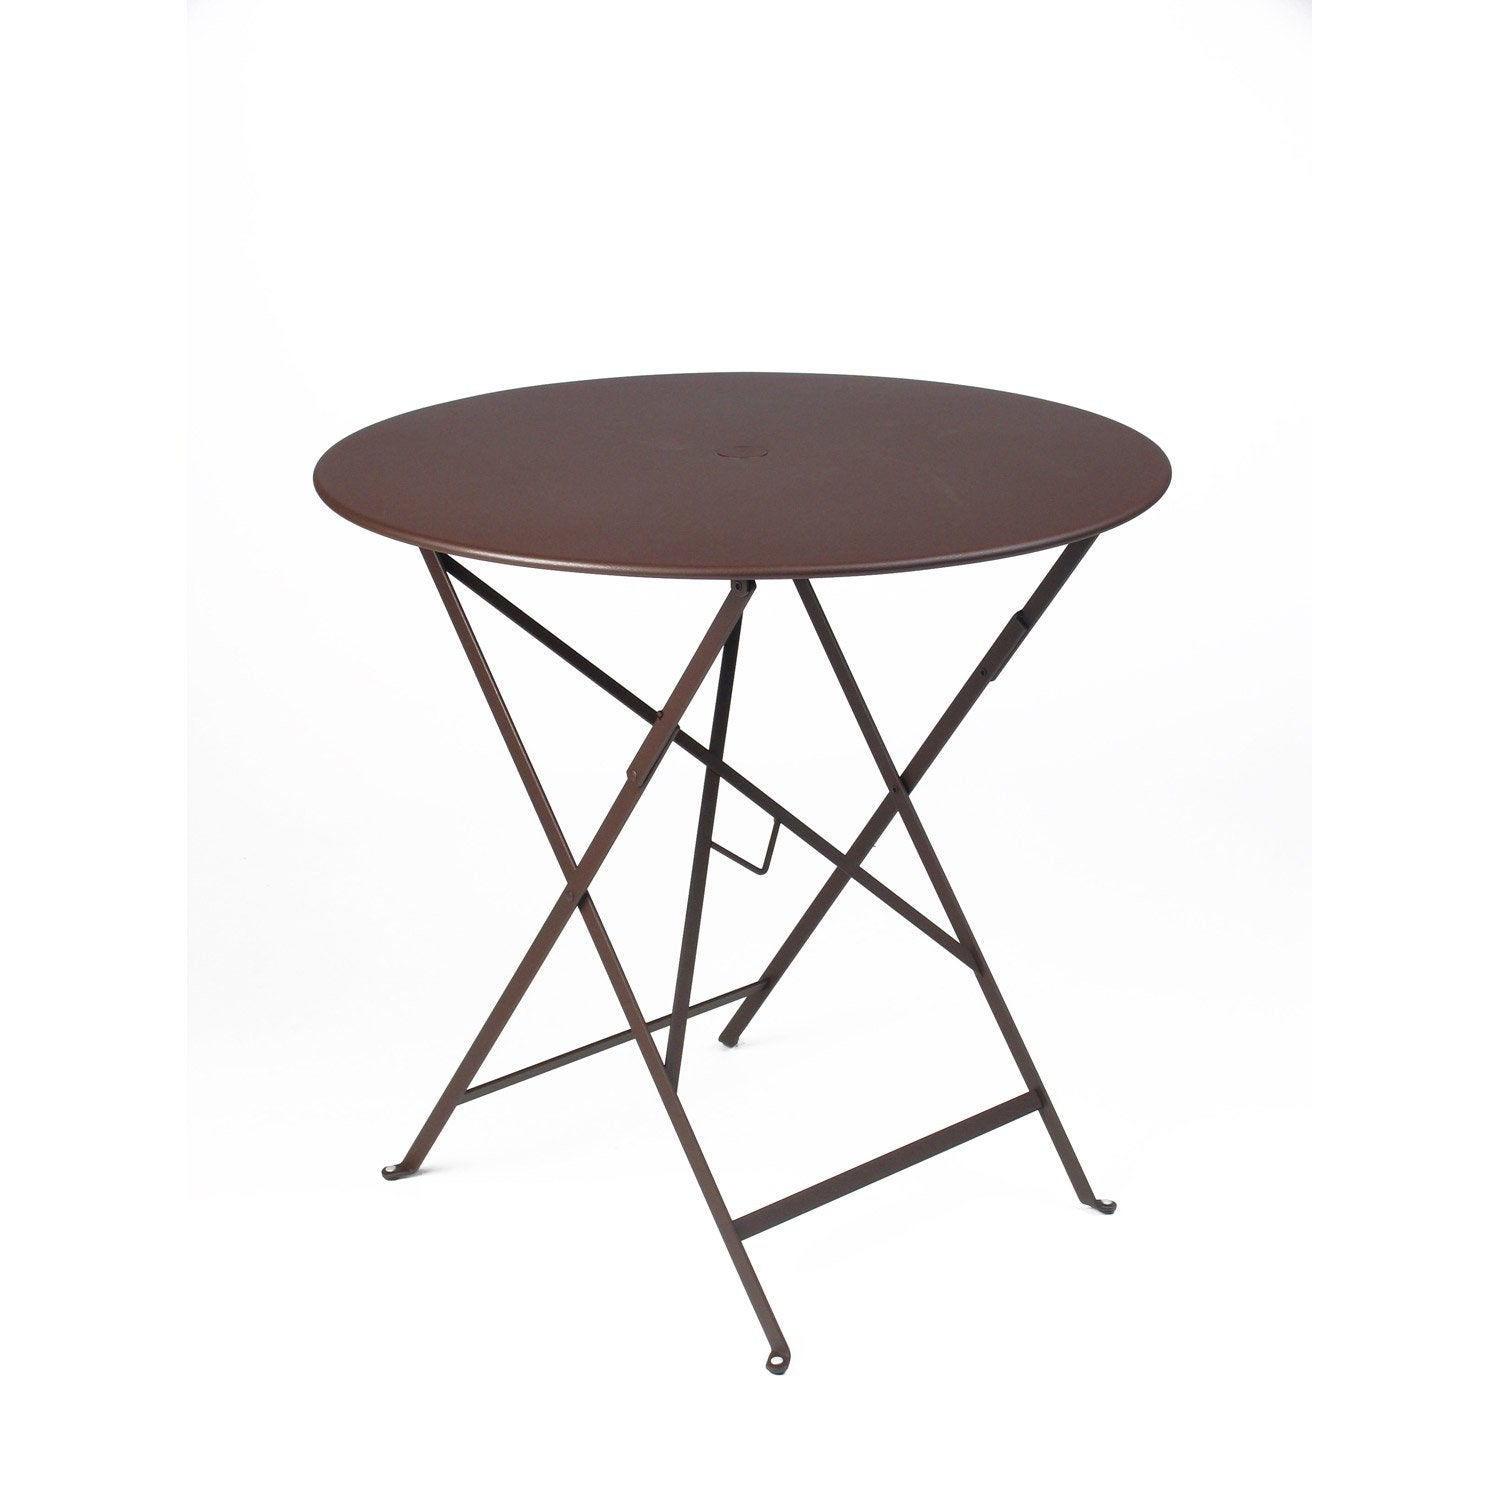 Table de jardin ronde bistro fermob leroy merlin - Table bistro jardin ...